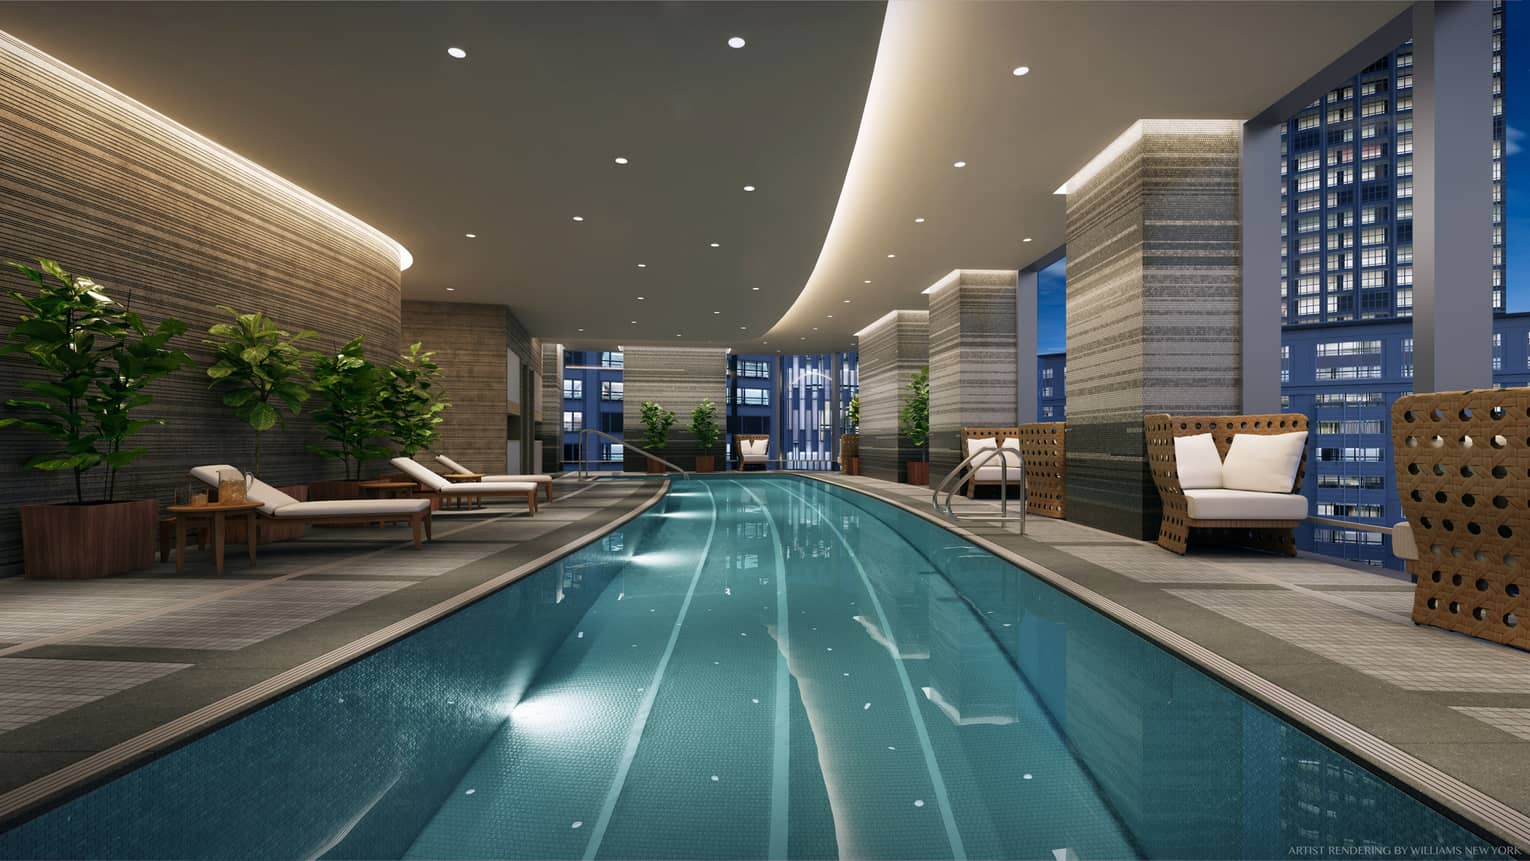 One Dalton Street, Boston long indoor swimming pool under accent, pot lights, chairs by window with city lights views